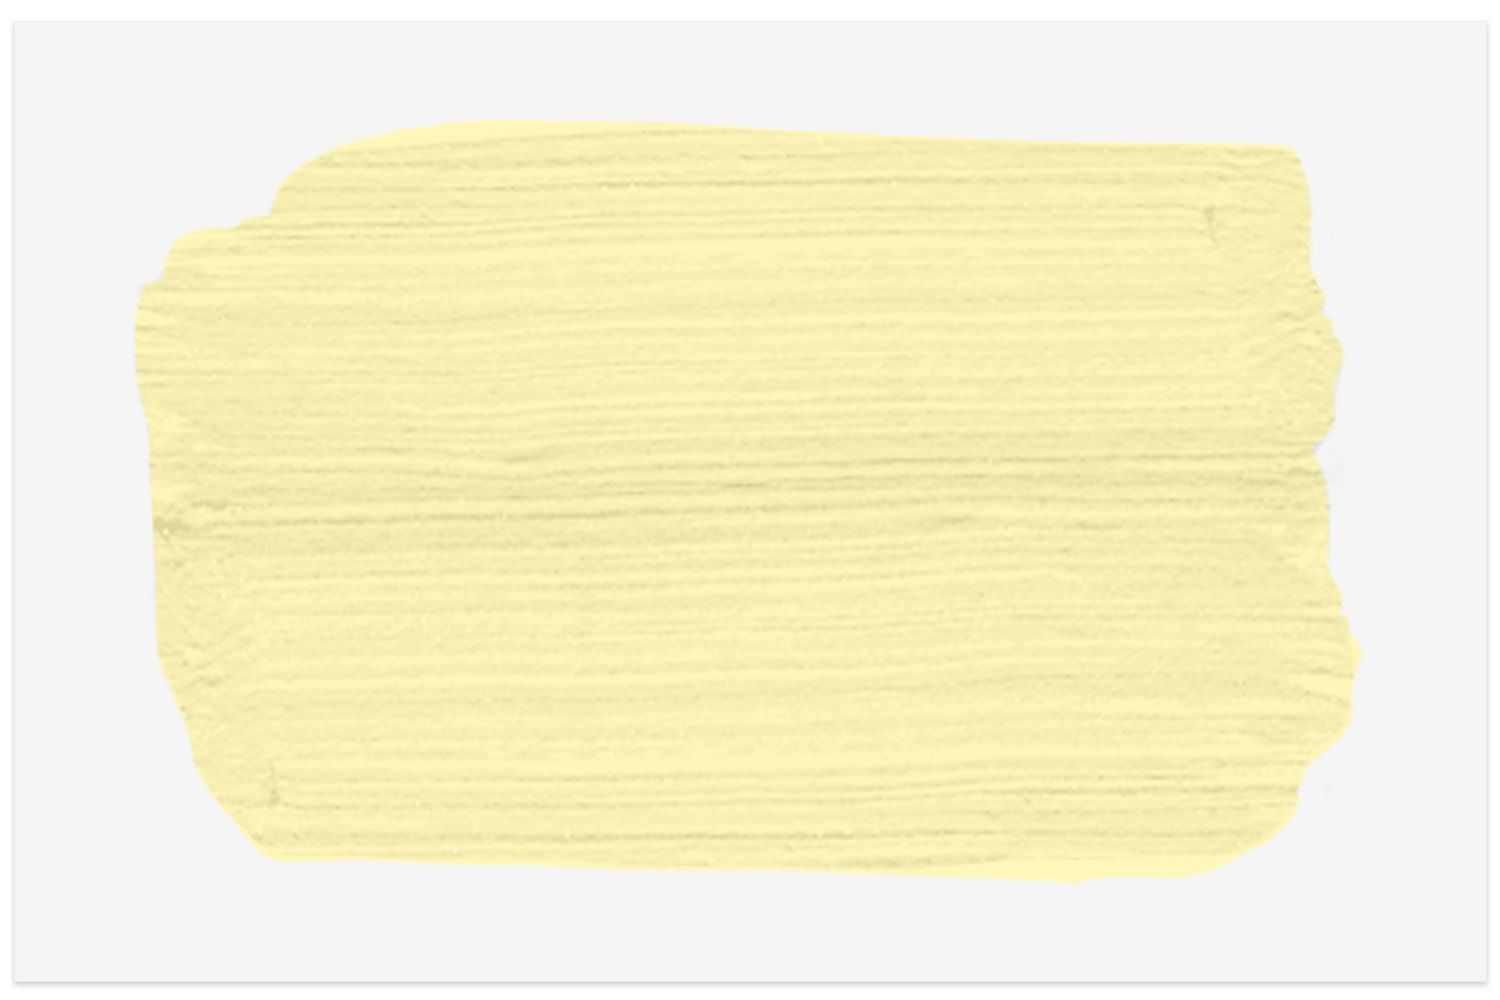 Yellow and Blue in Delray Beach paint swatch